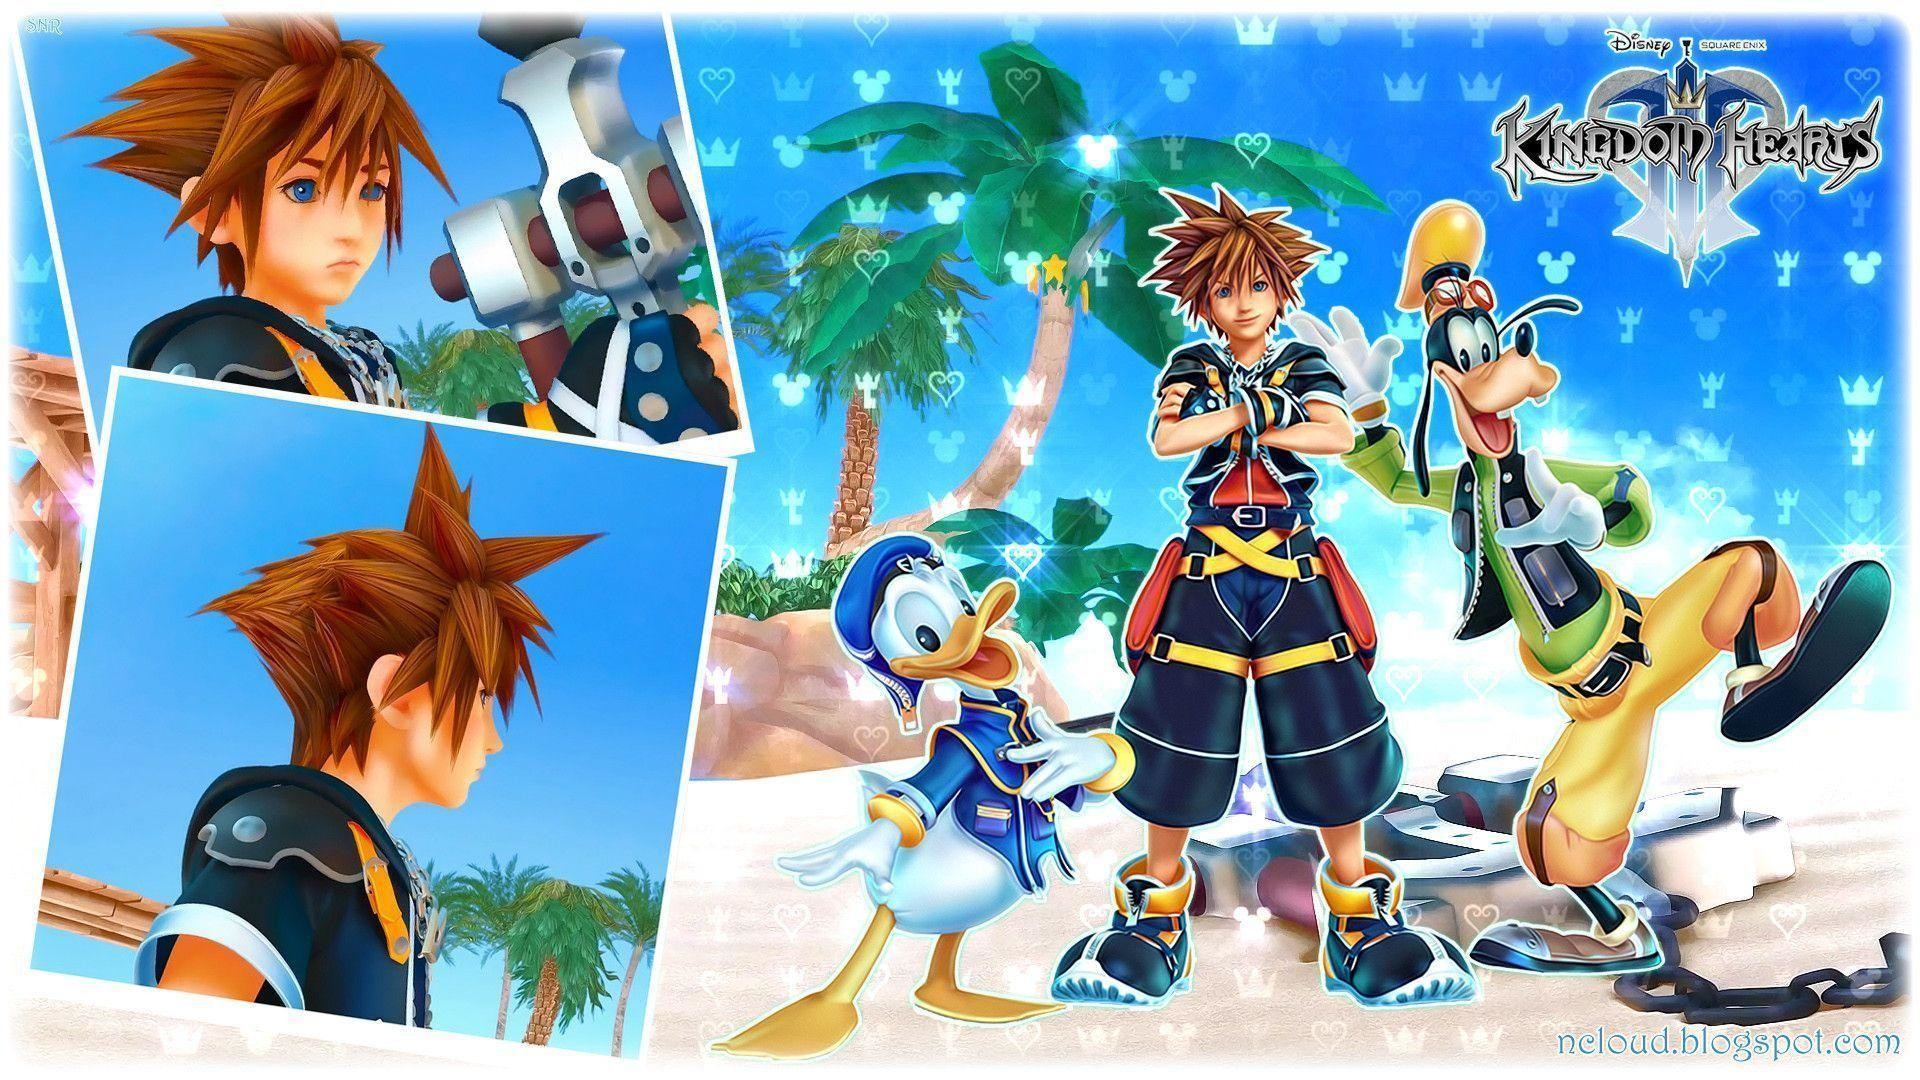 1920x1080 Games Movies Music Anime: My Kingdom Hearts 3 Wallpaper